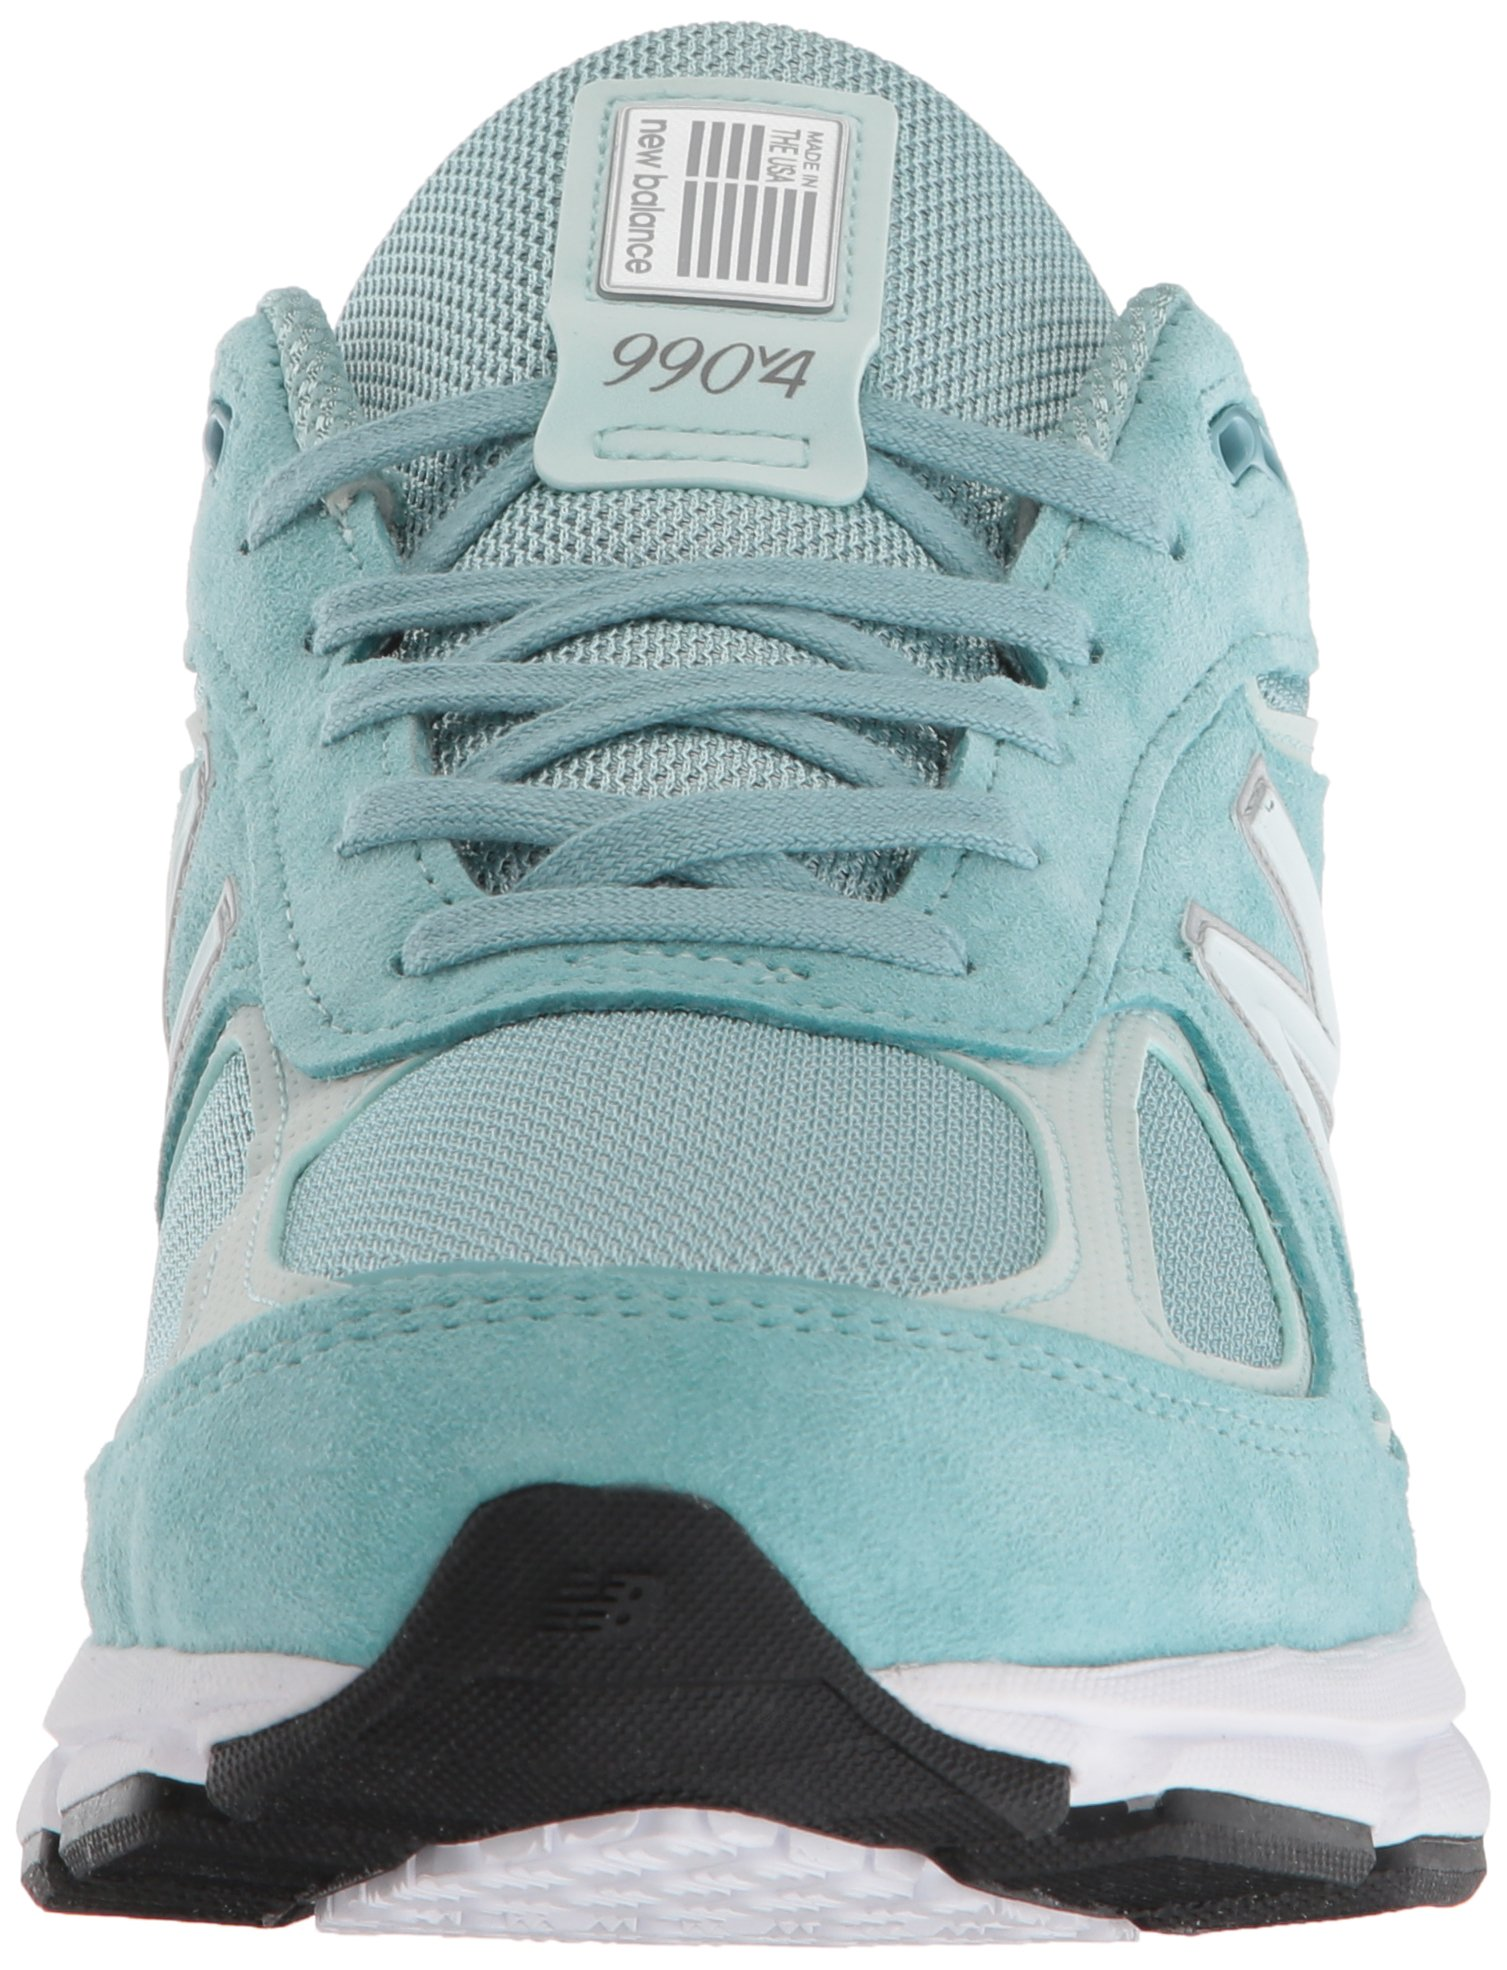 New Balance Men's 990v4, Green/White, 7 D US by New Balance (Image #4)